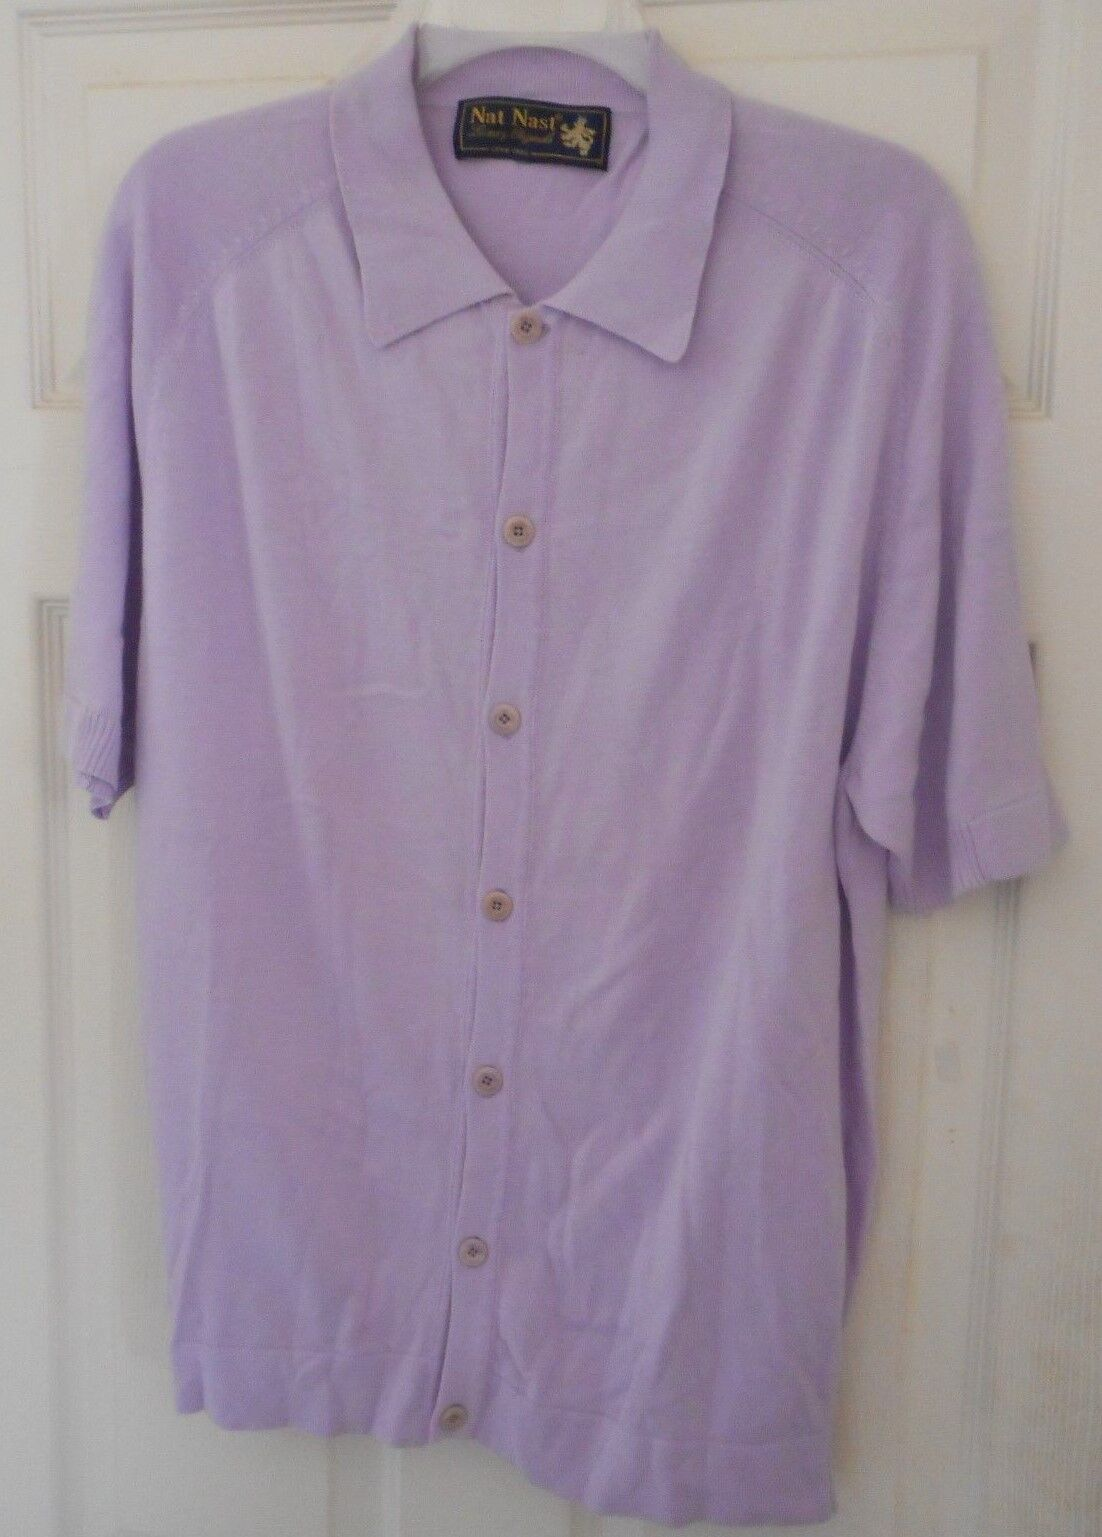 New  NAT NAST 50's-60's Knit Style  Pink Lavender Button Front  Cotton Blend M